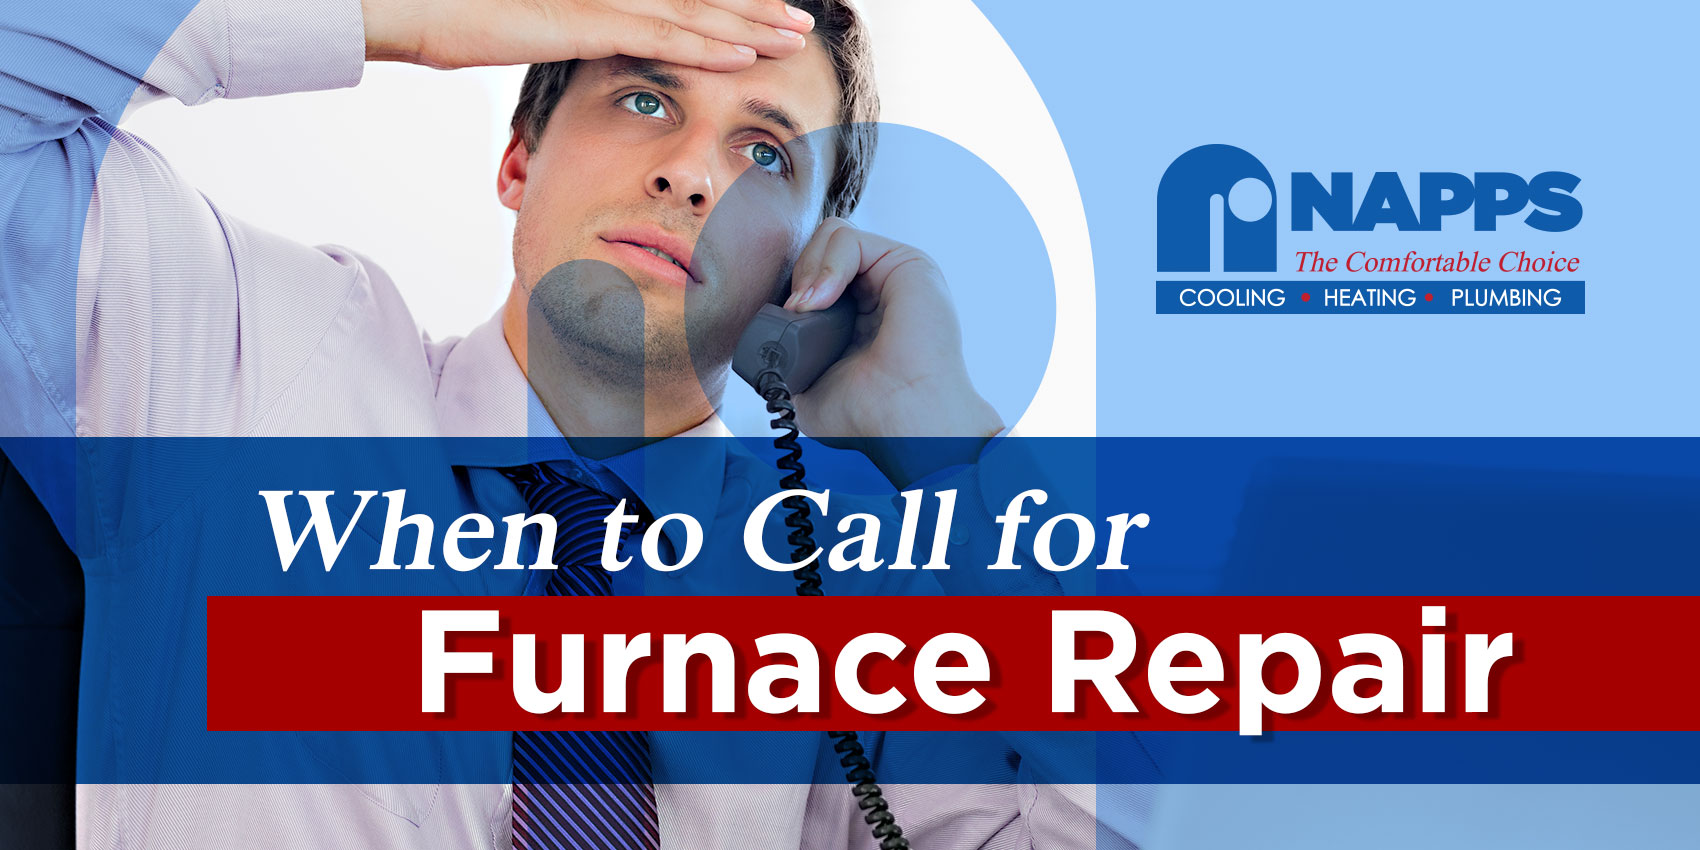 When to Call for Furnace Repair